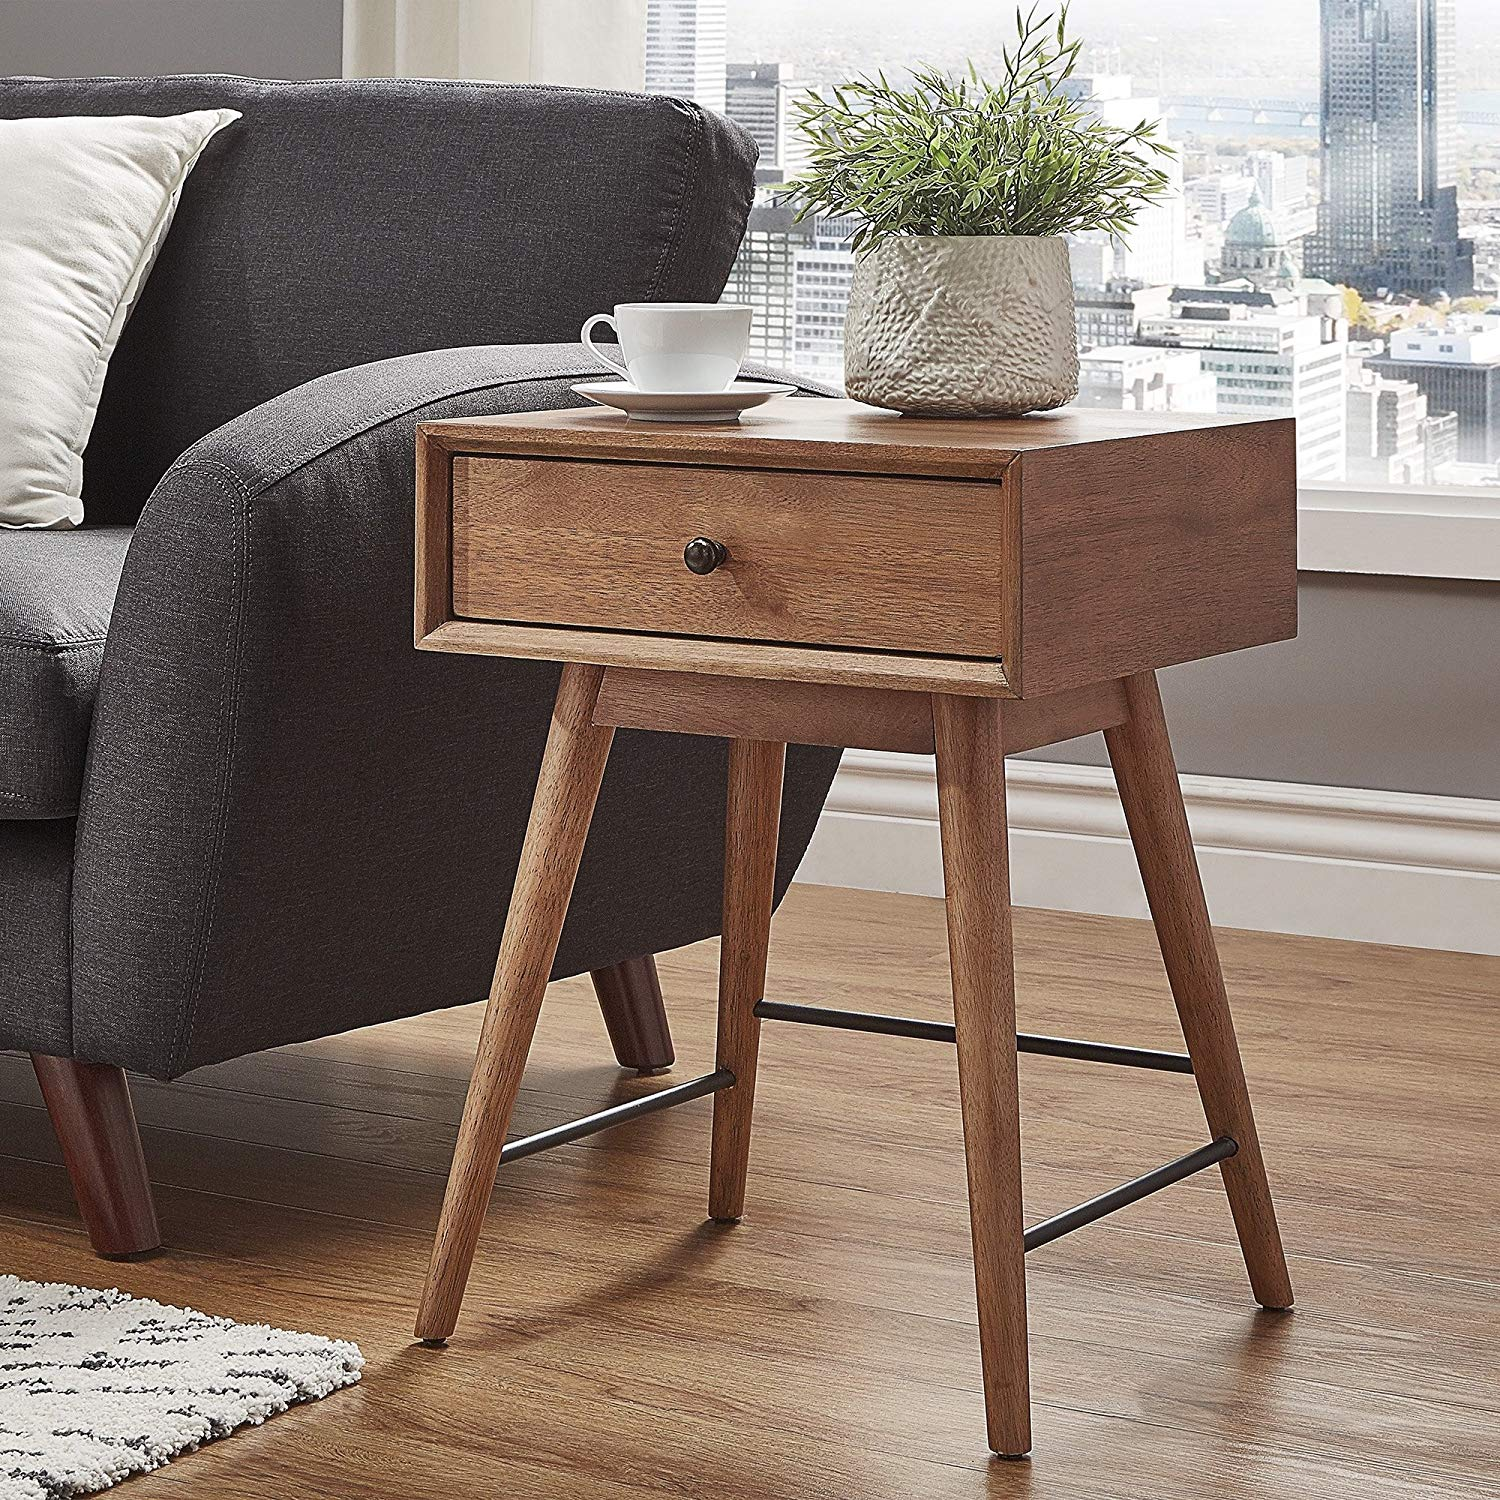 Contemporary Rectangle End Table, 1-Drawer, Mid-Century Modern Design, Crafted of Rubberwood, Metal, MDF and Veneer, Tapered Legs, Metal Drawer Glides, Bronze Drawer Pull Finish, Brown Wood Finish